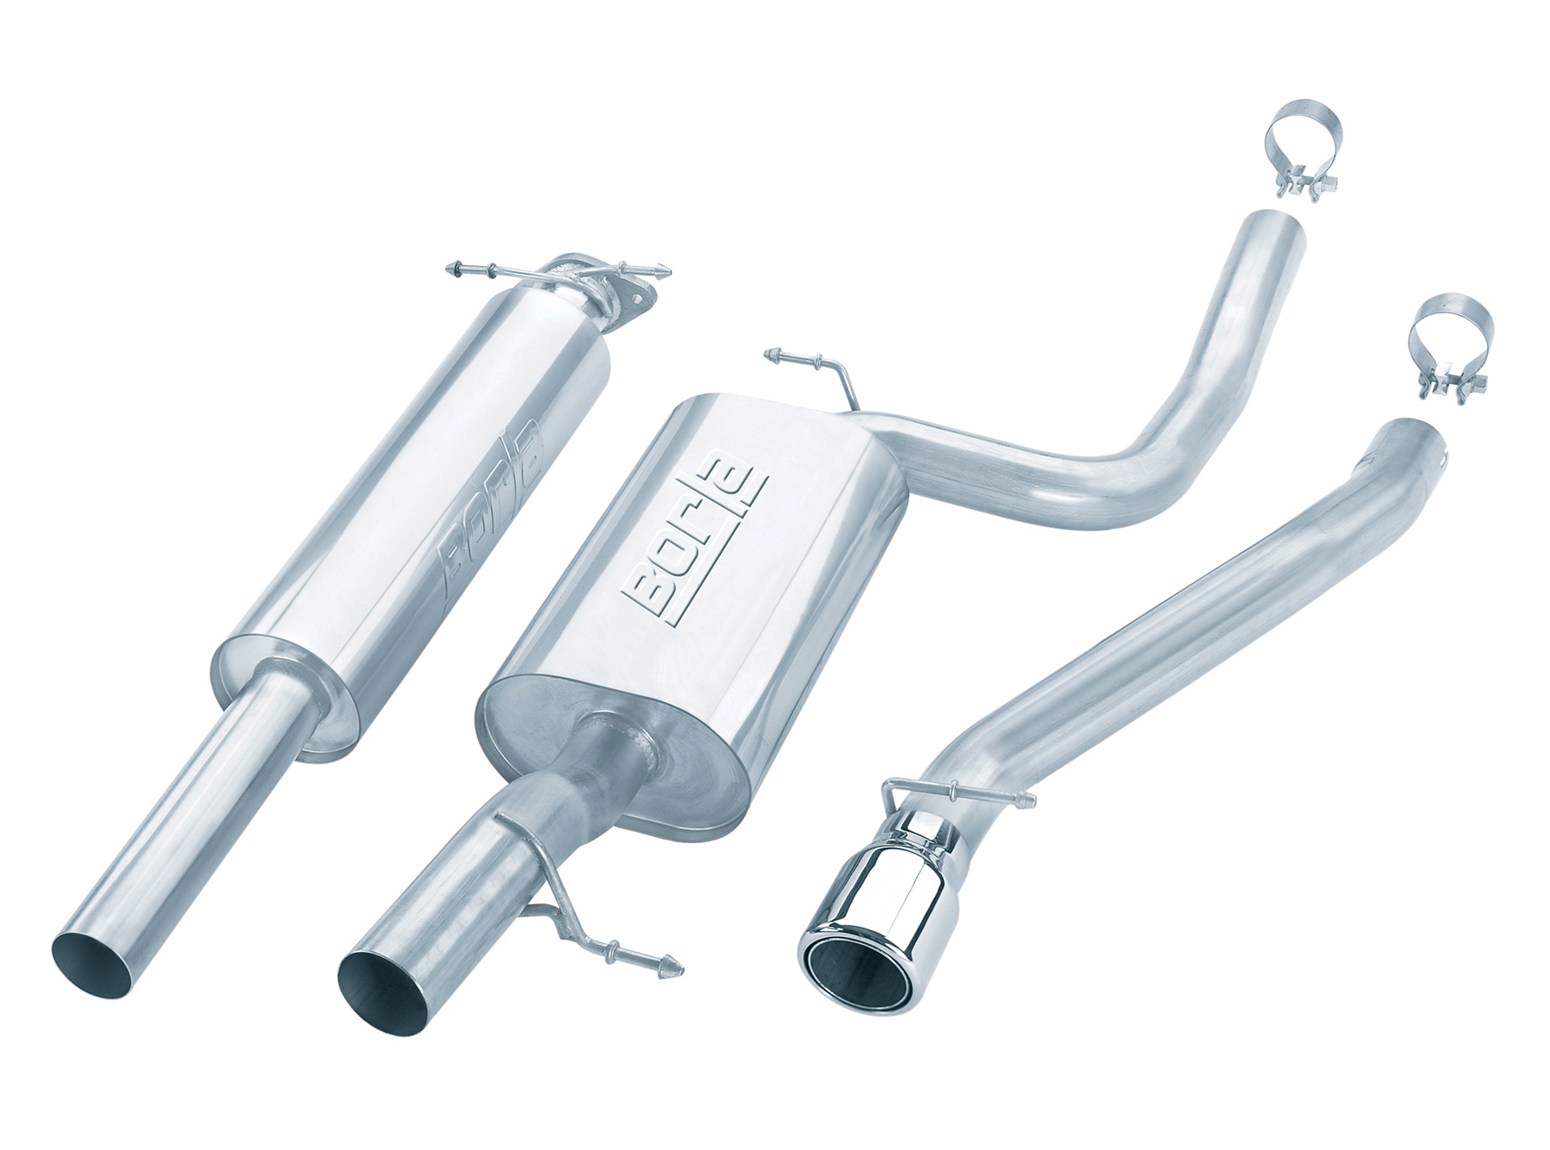 Ford Focus Svt 2.0l 2002-2004 Borla 2.5&#34; Cat-Back Exhaust System - Single Round Half-Rolled Angle-Cut Phantom